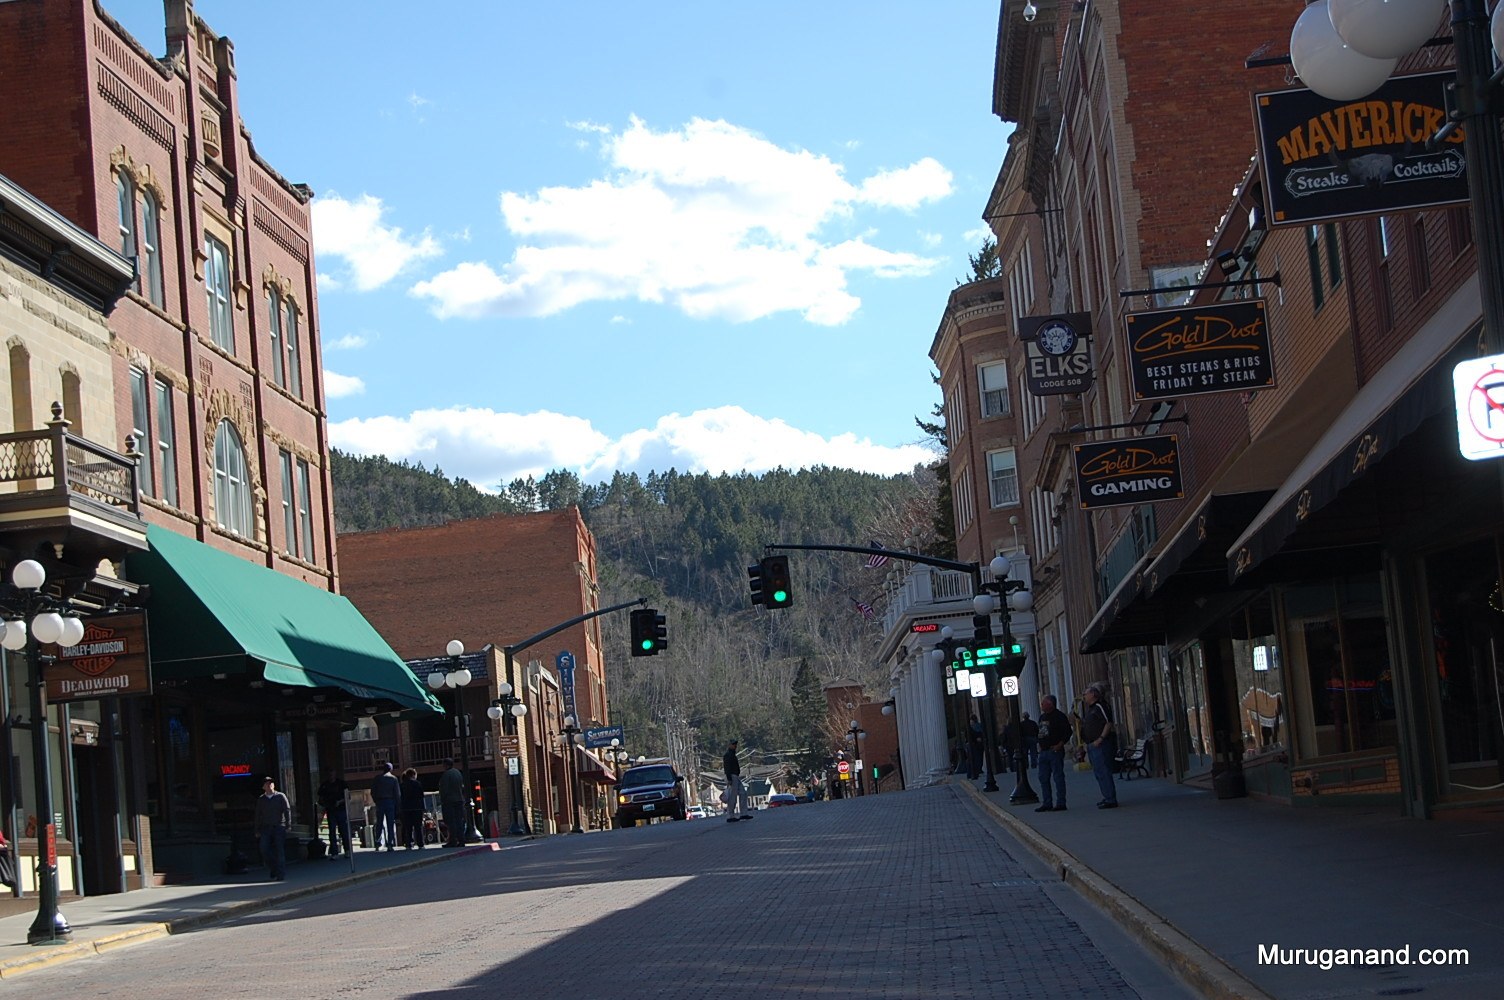 Deadwood today. Streets are maintained to feel the old west.